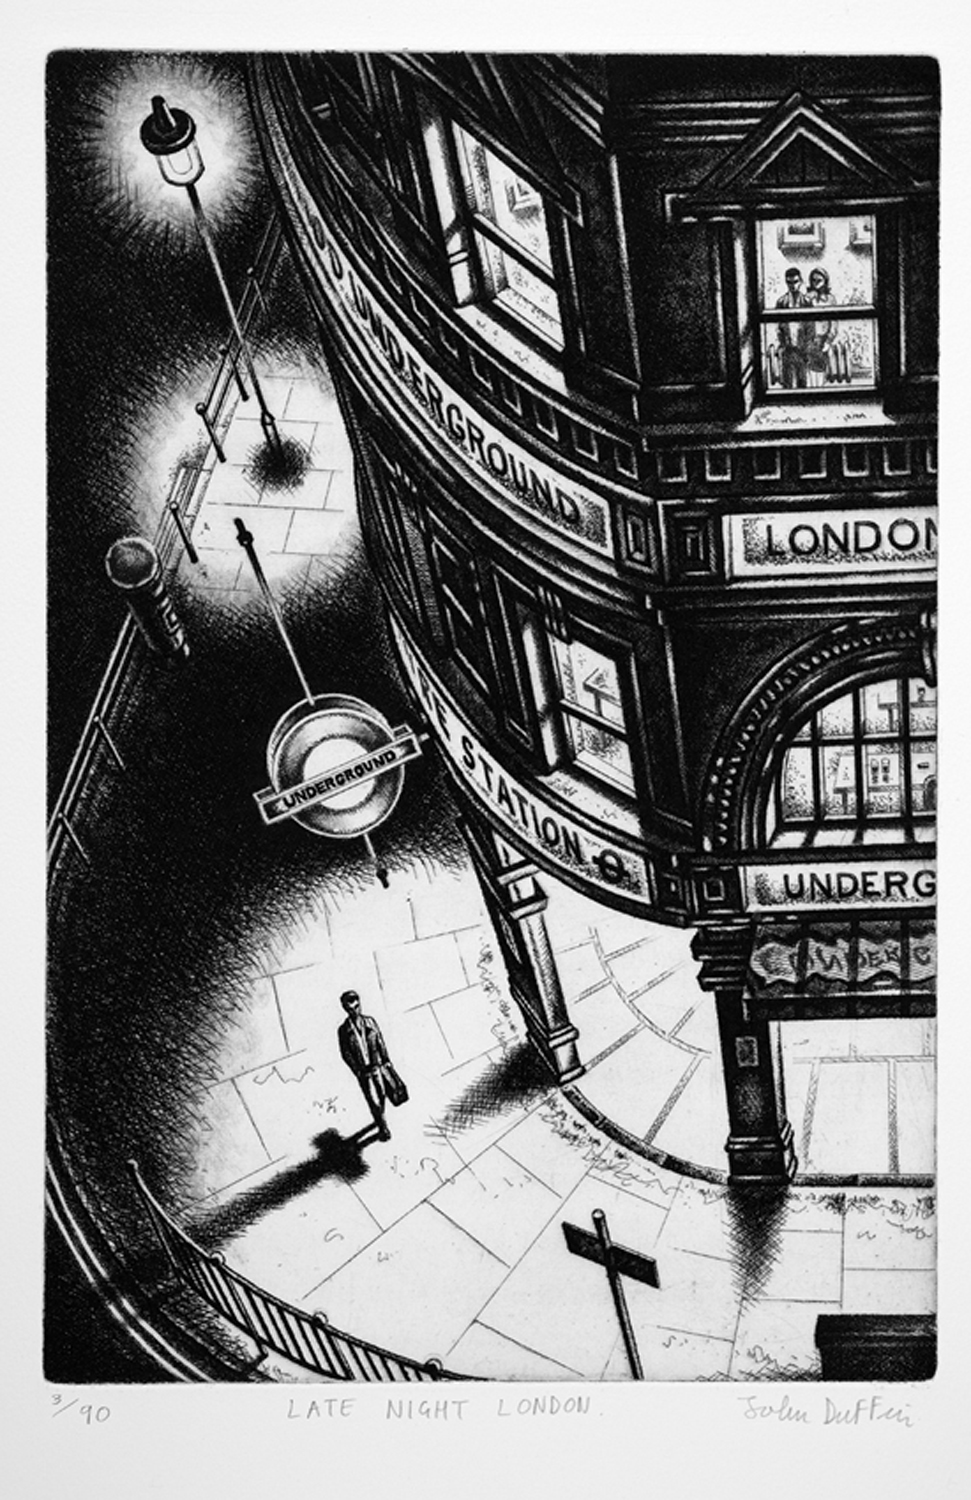 John Duffin   Late Night London   etching